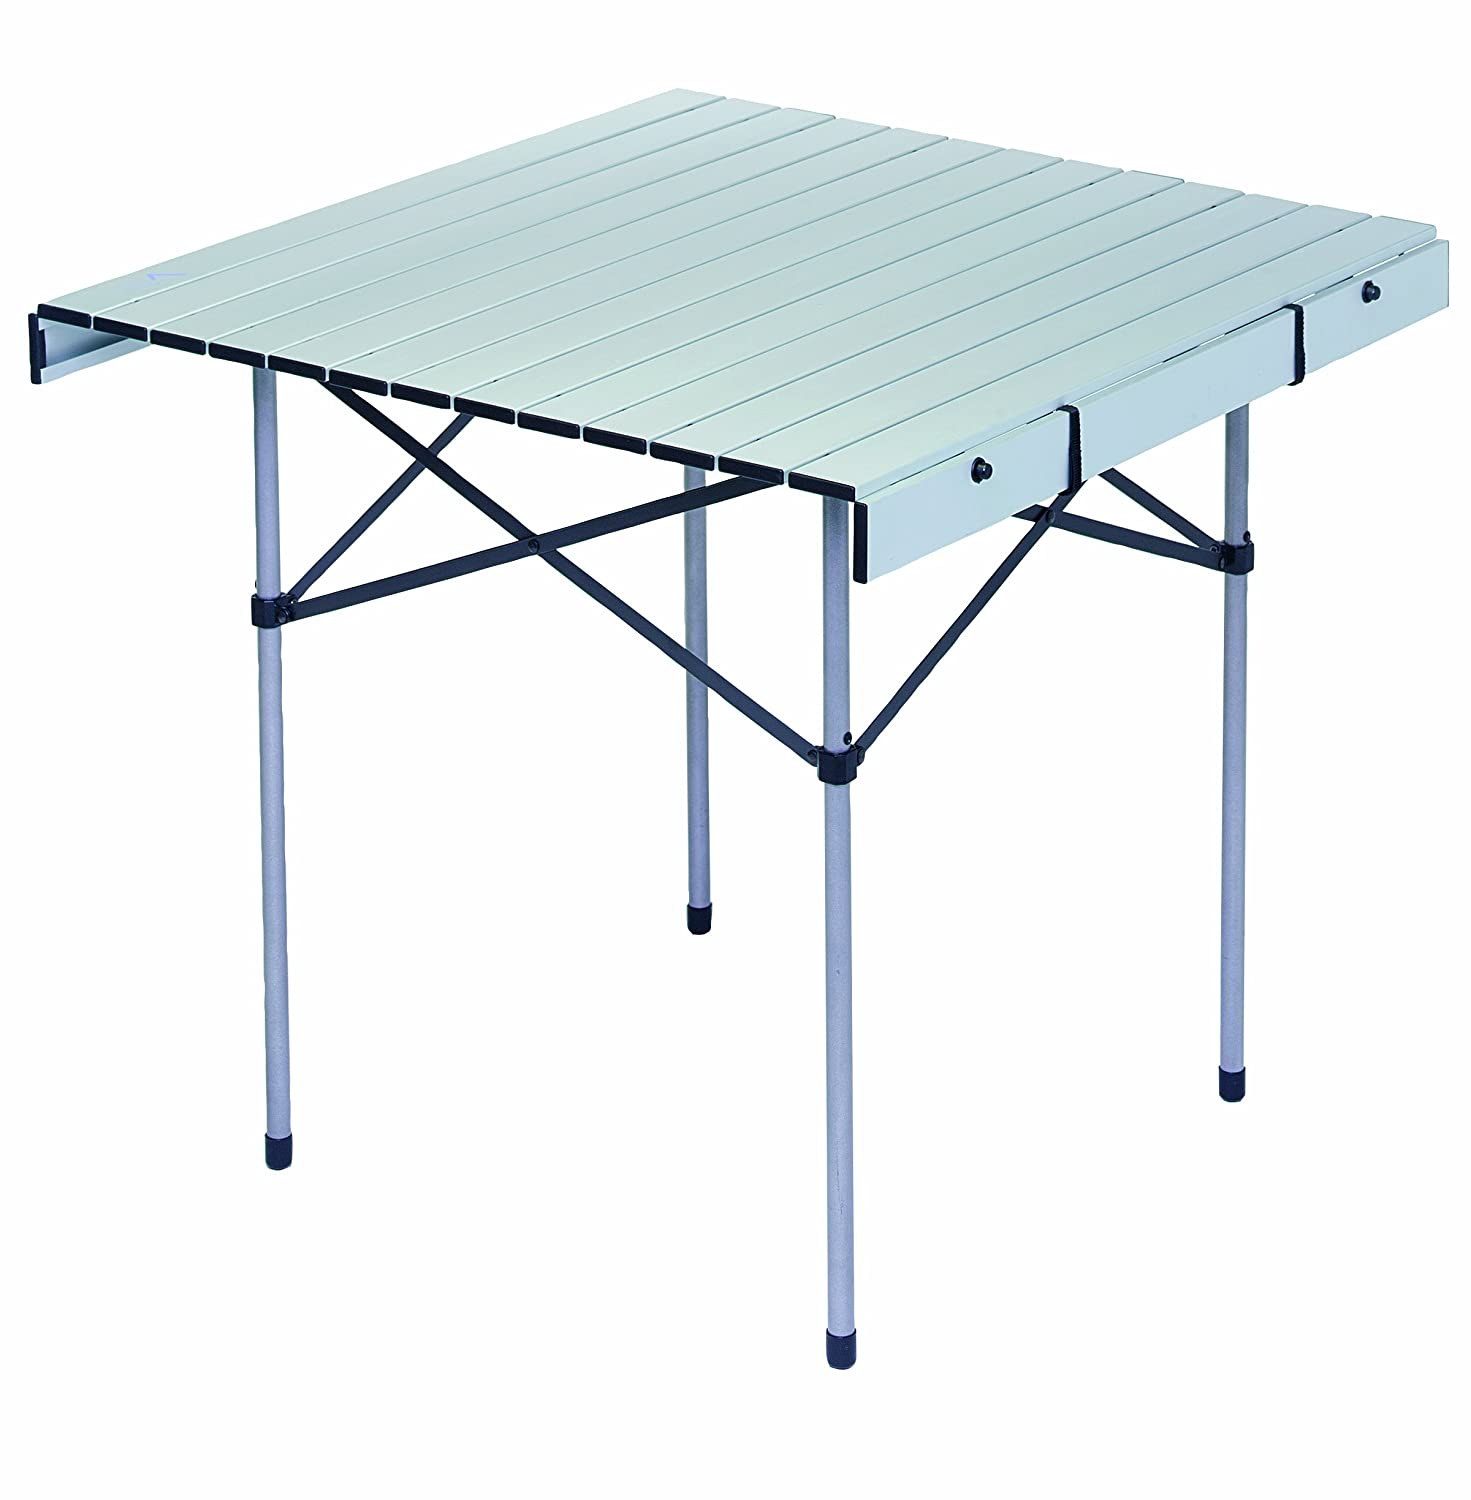 Camping Folding Table And Chairs Set Amazon Best Sellers Best Camping Tables